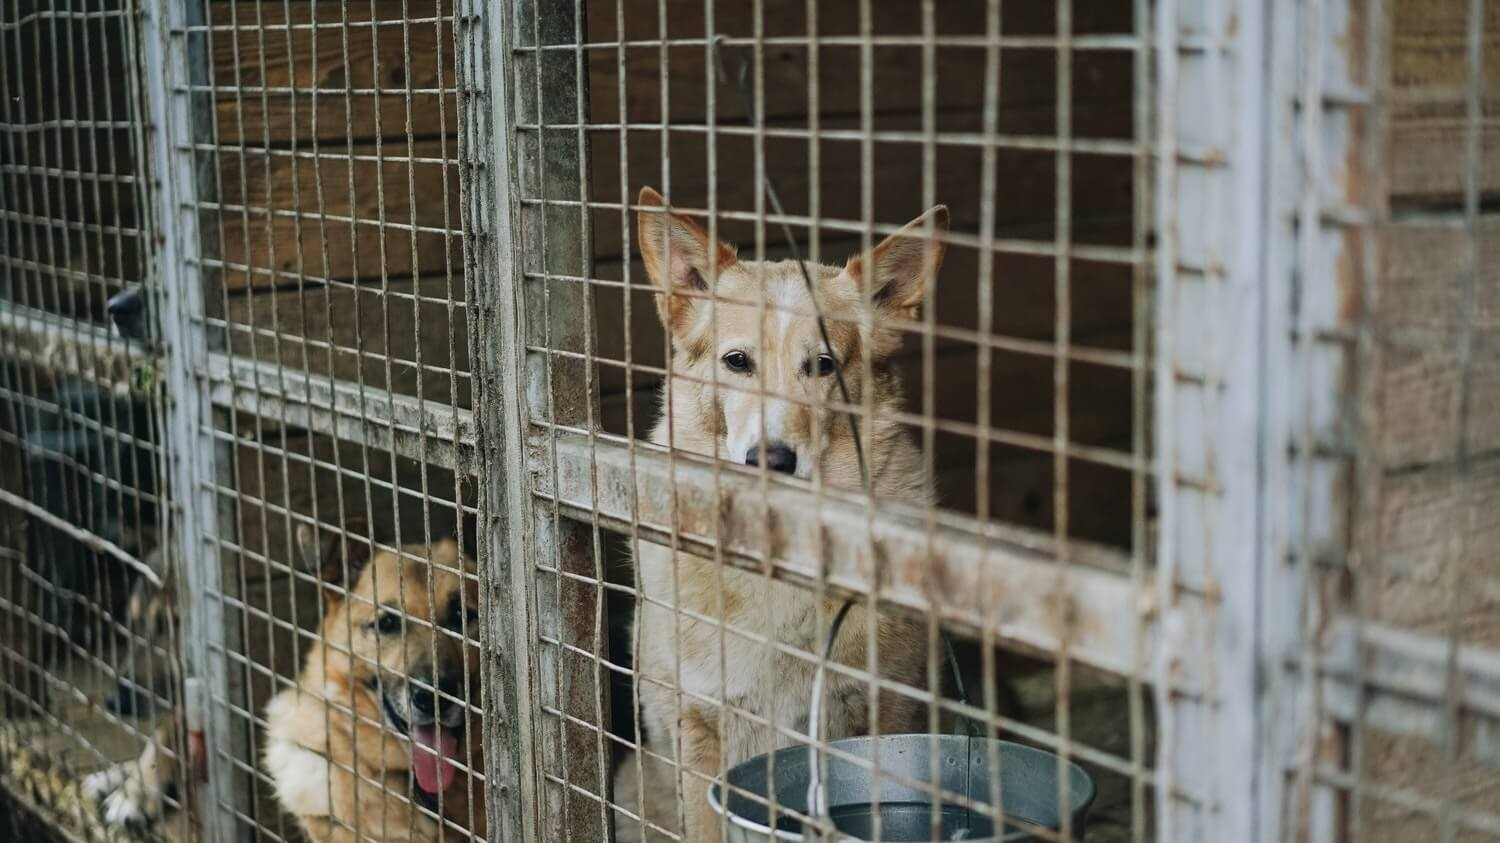 Pet Detectives Use Counterterrorism Technology to Take Down Puppy Mills